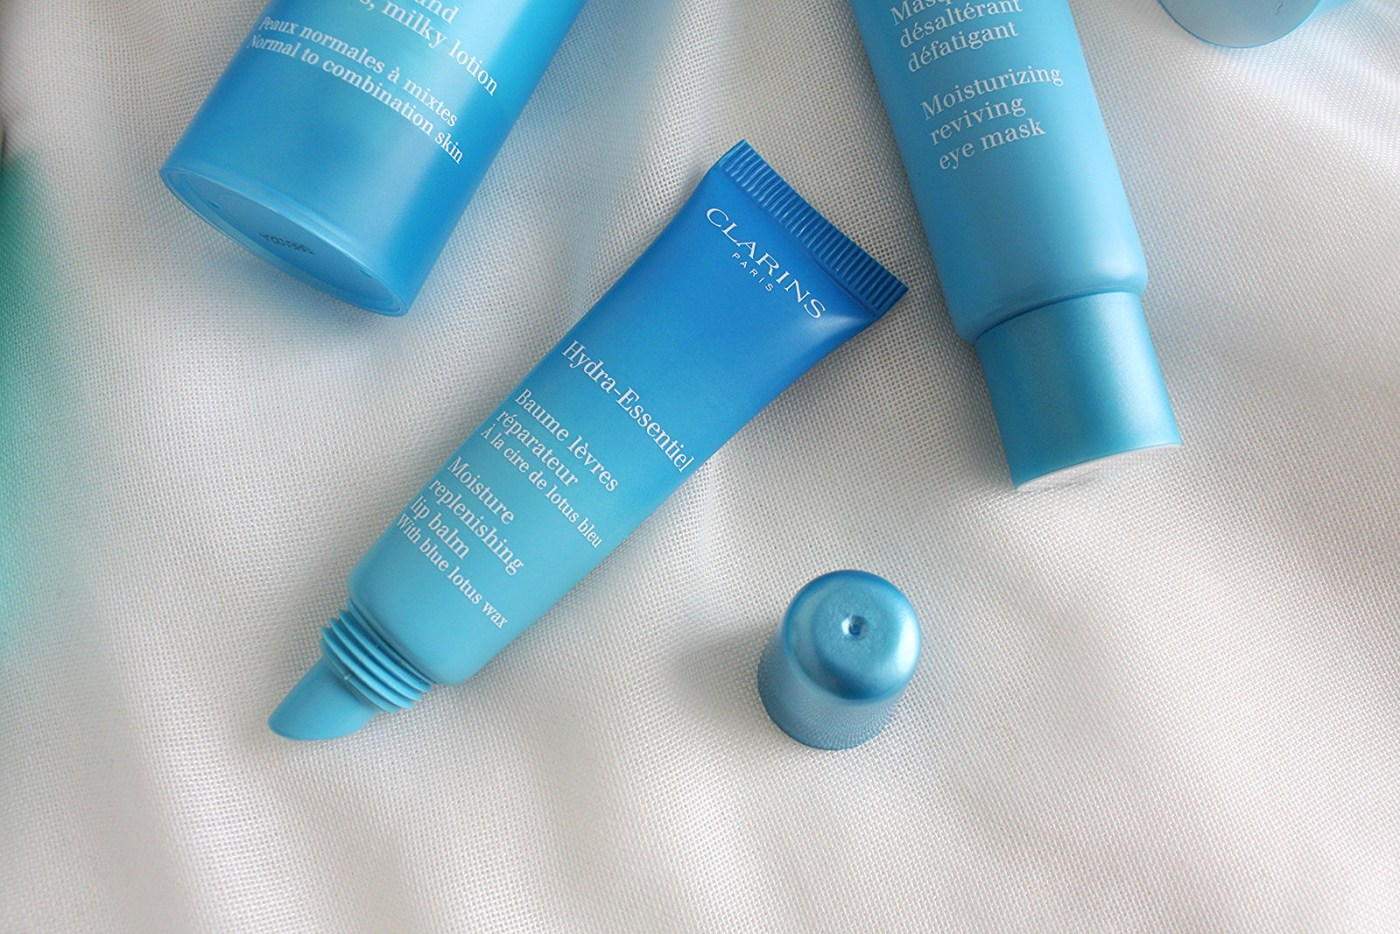 SKINCARE TESTING WITH CLARINS